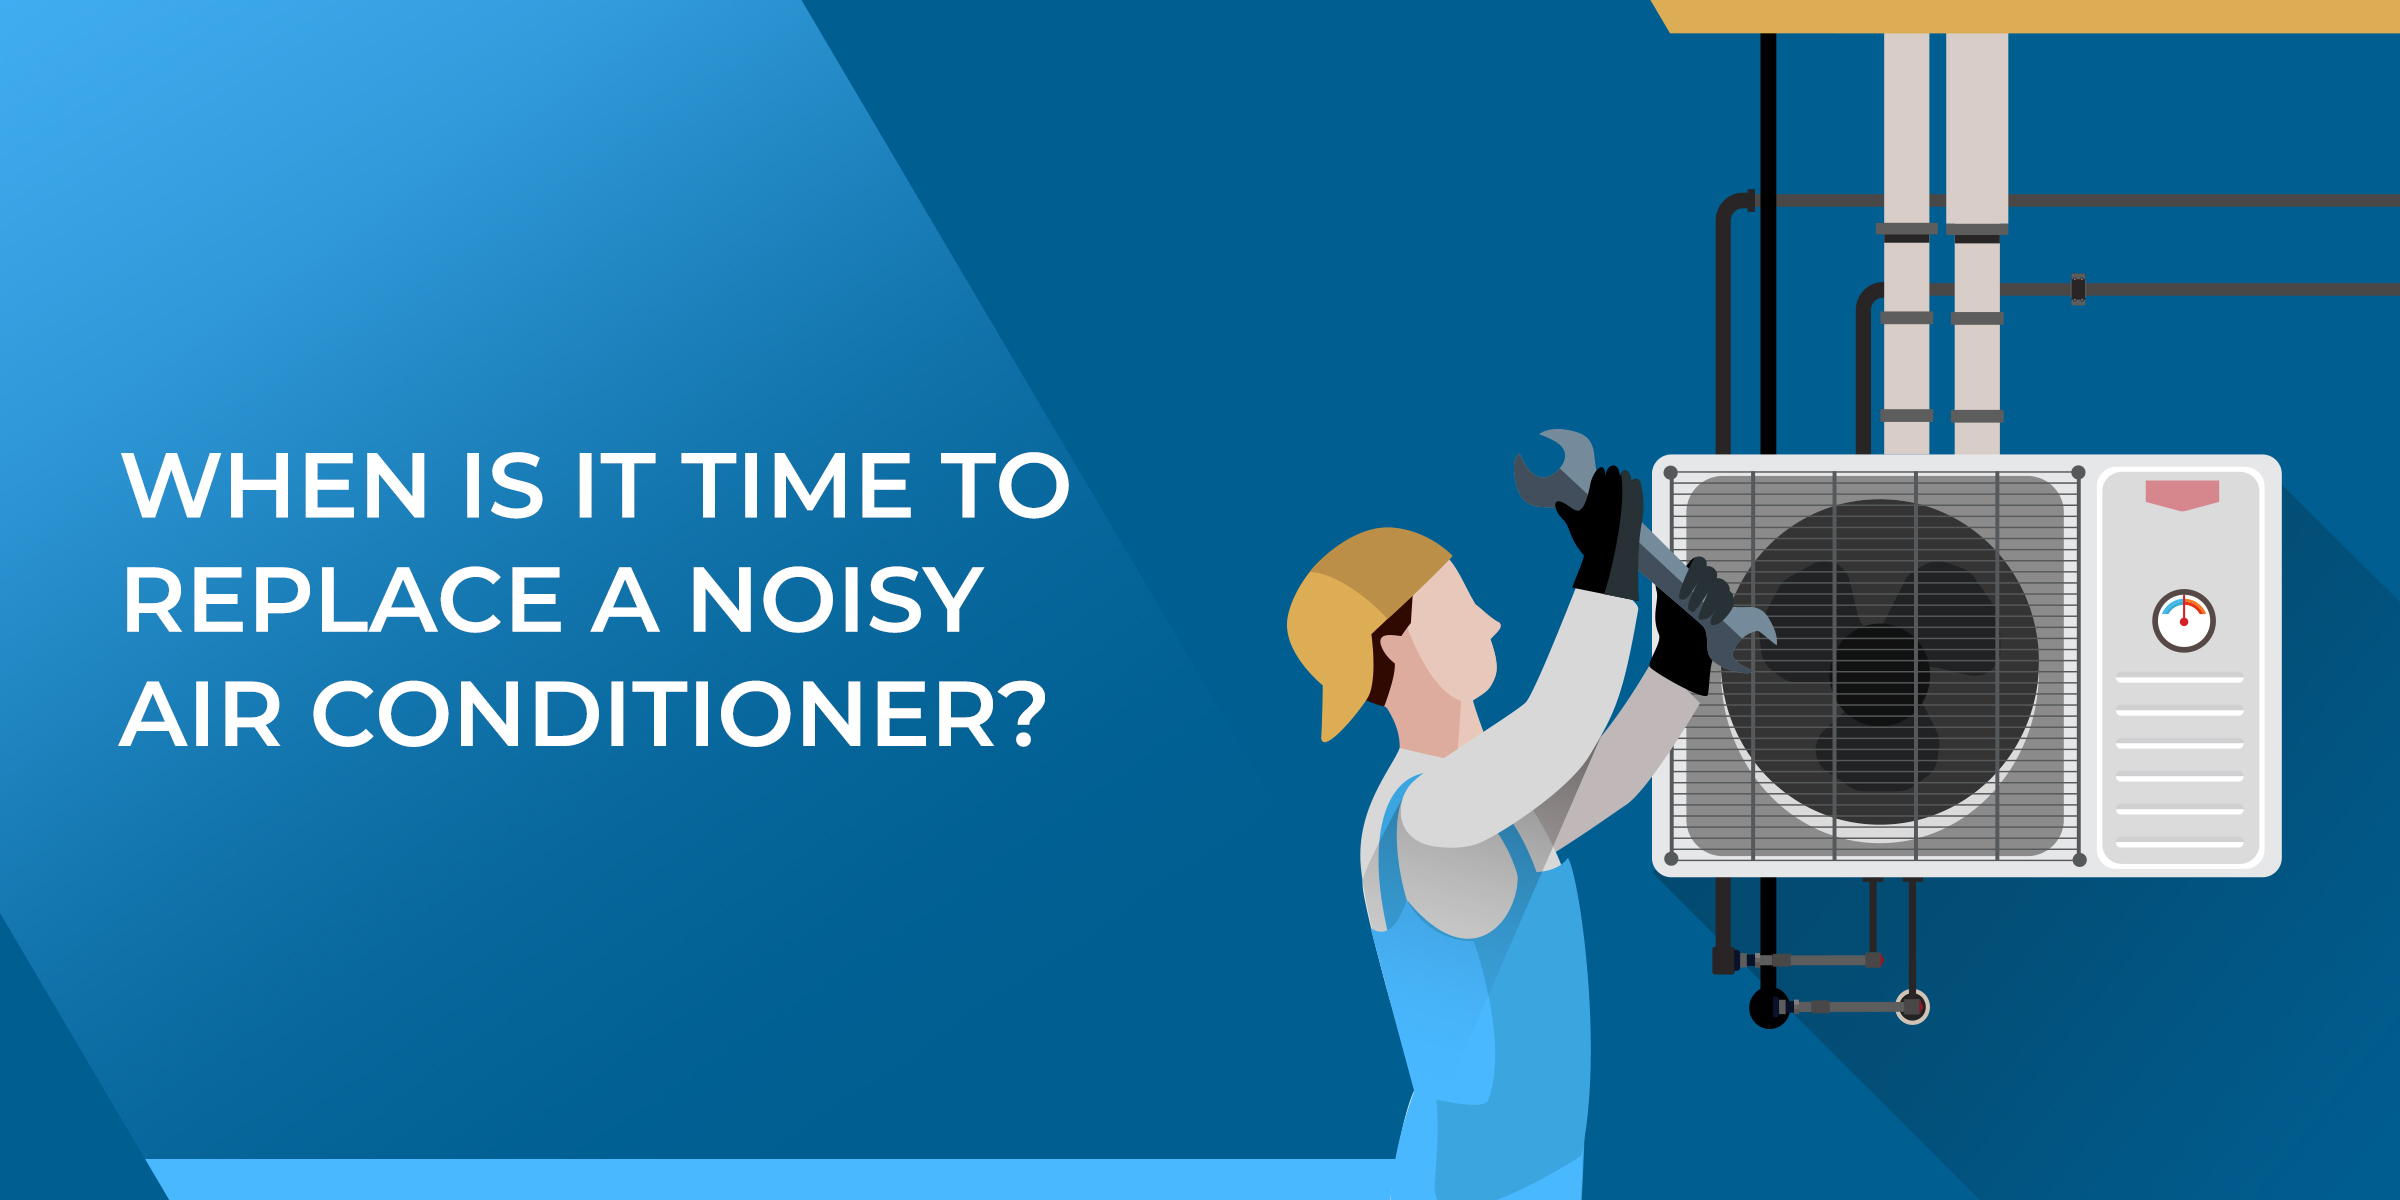 When Is It Time To Replace A Noisy Air Conditioner